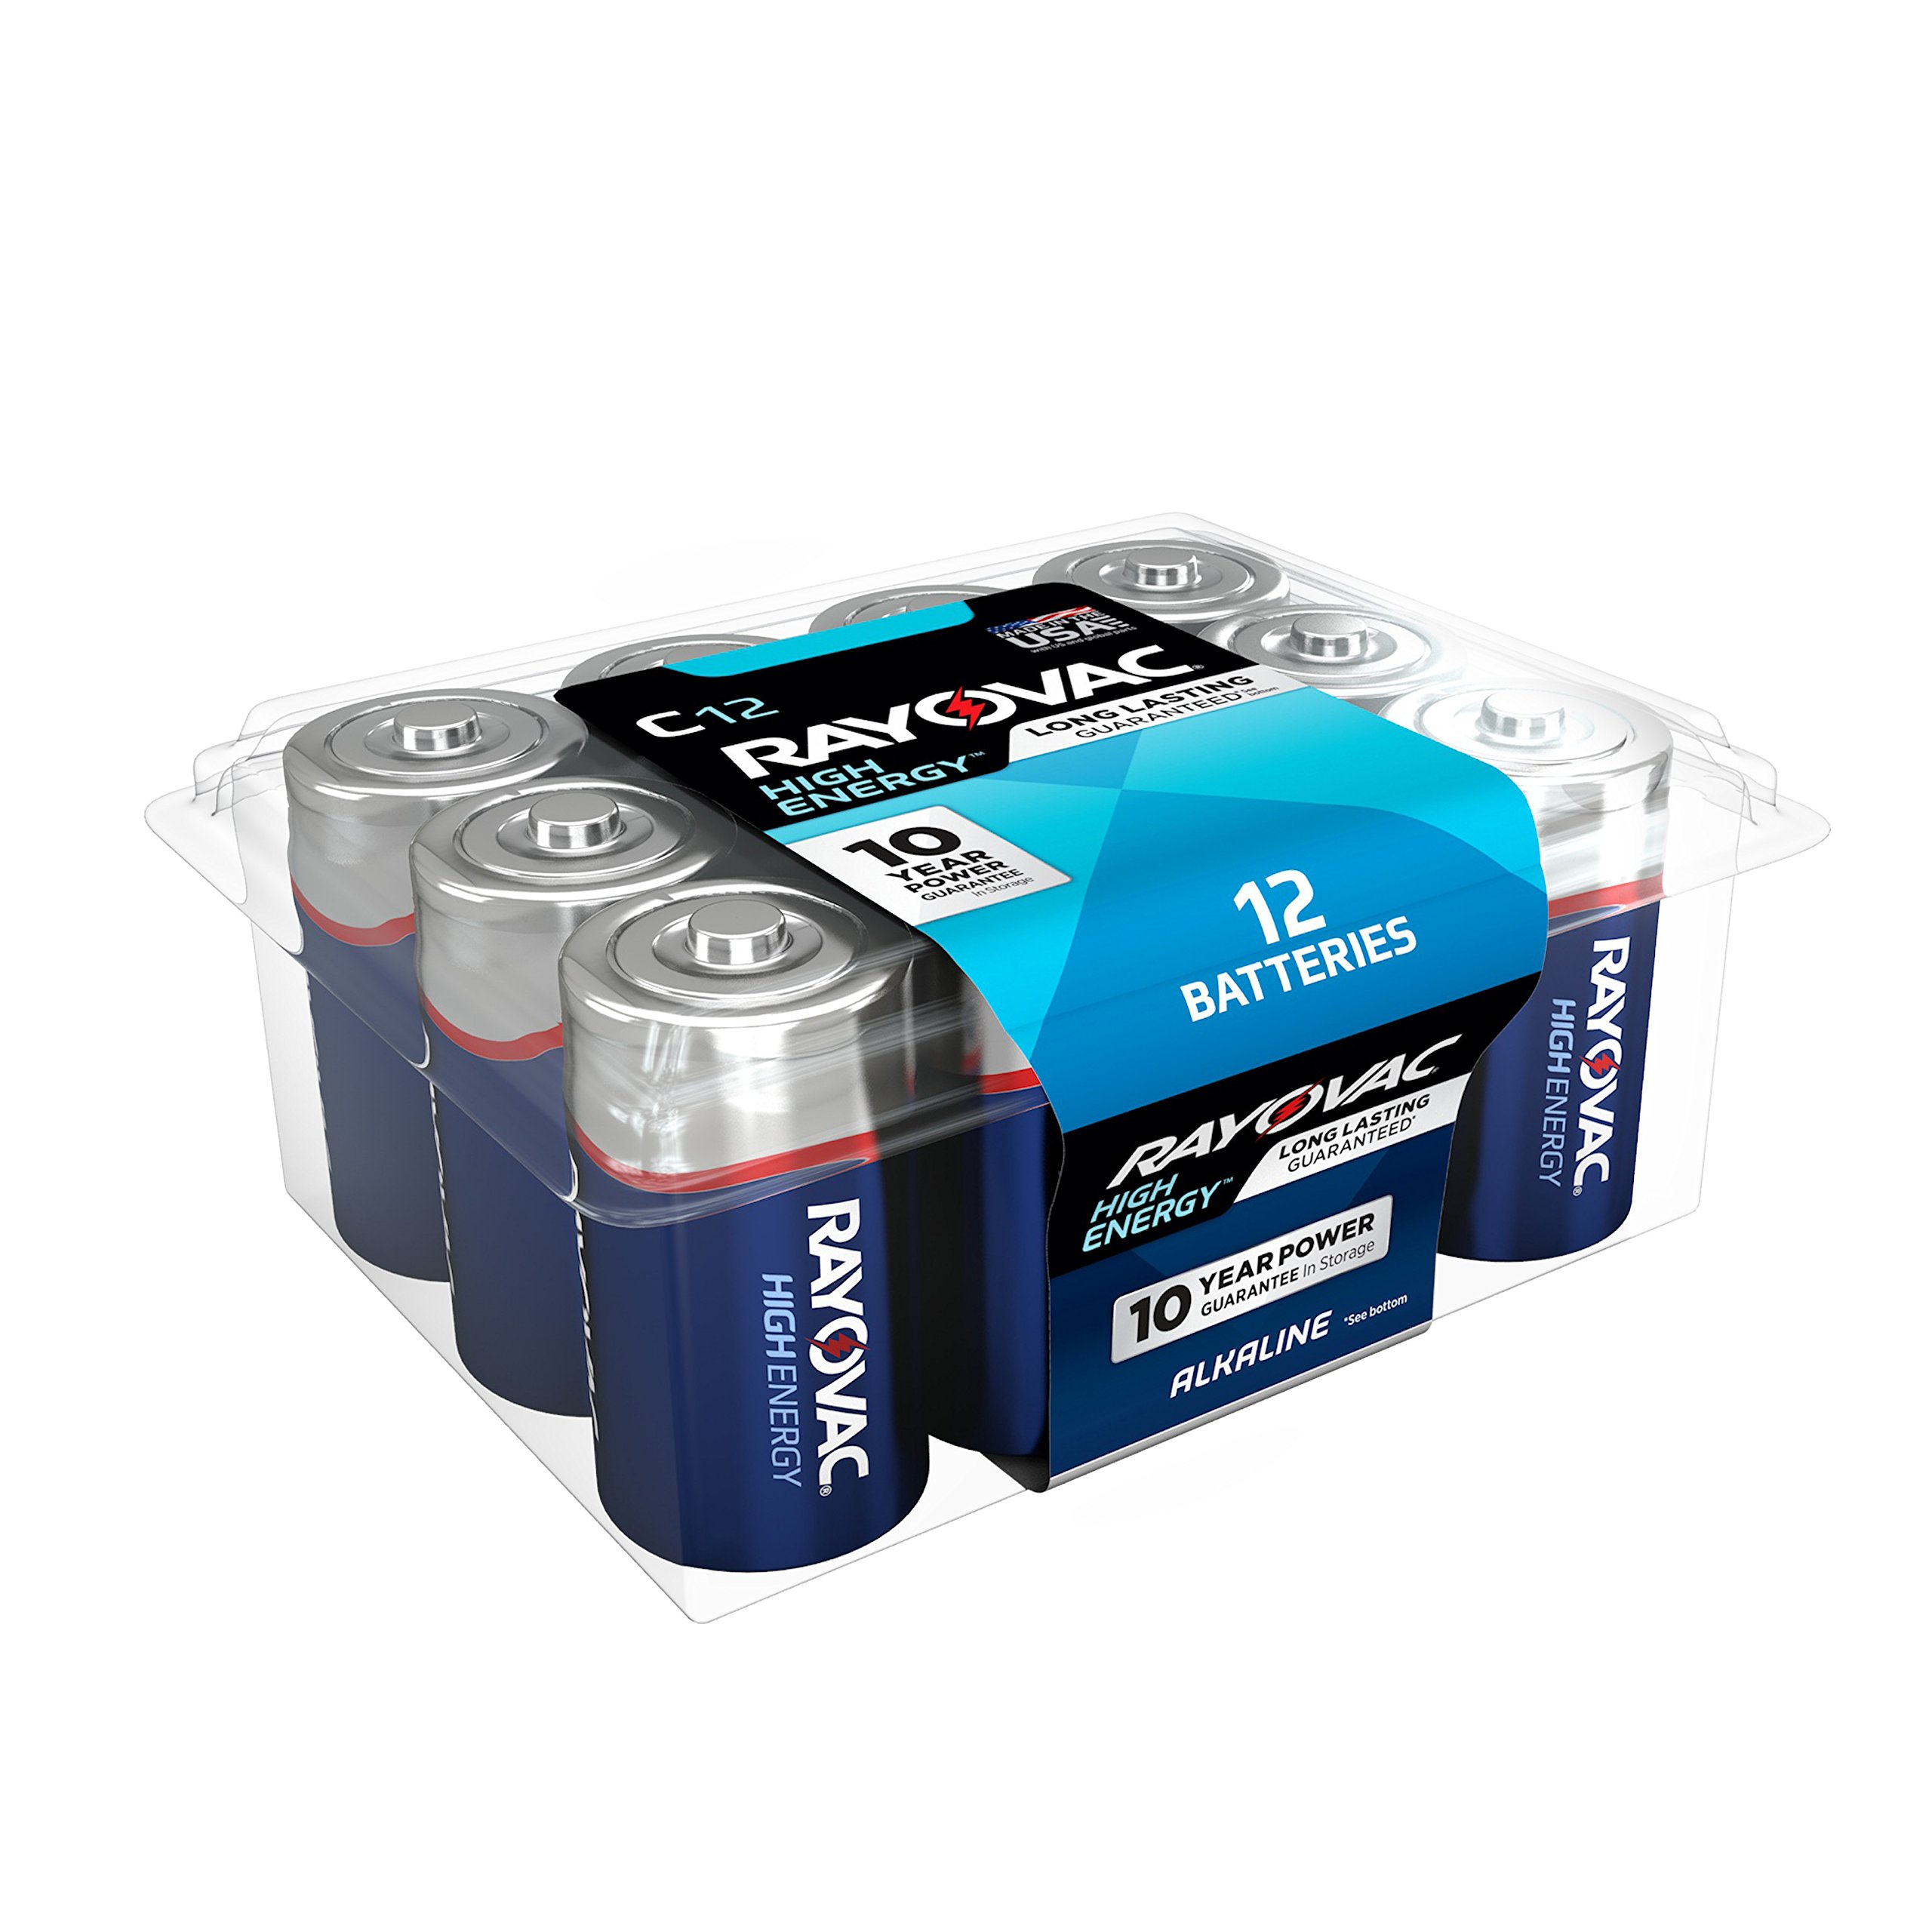 RAYOVAC C 12-Pack HIGH ENERGY Alkaline Batteries, 814-12PPK